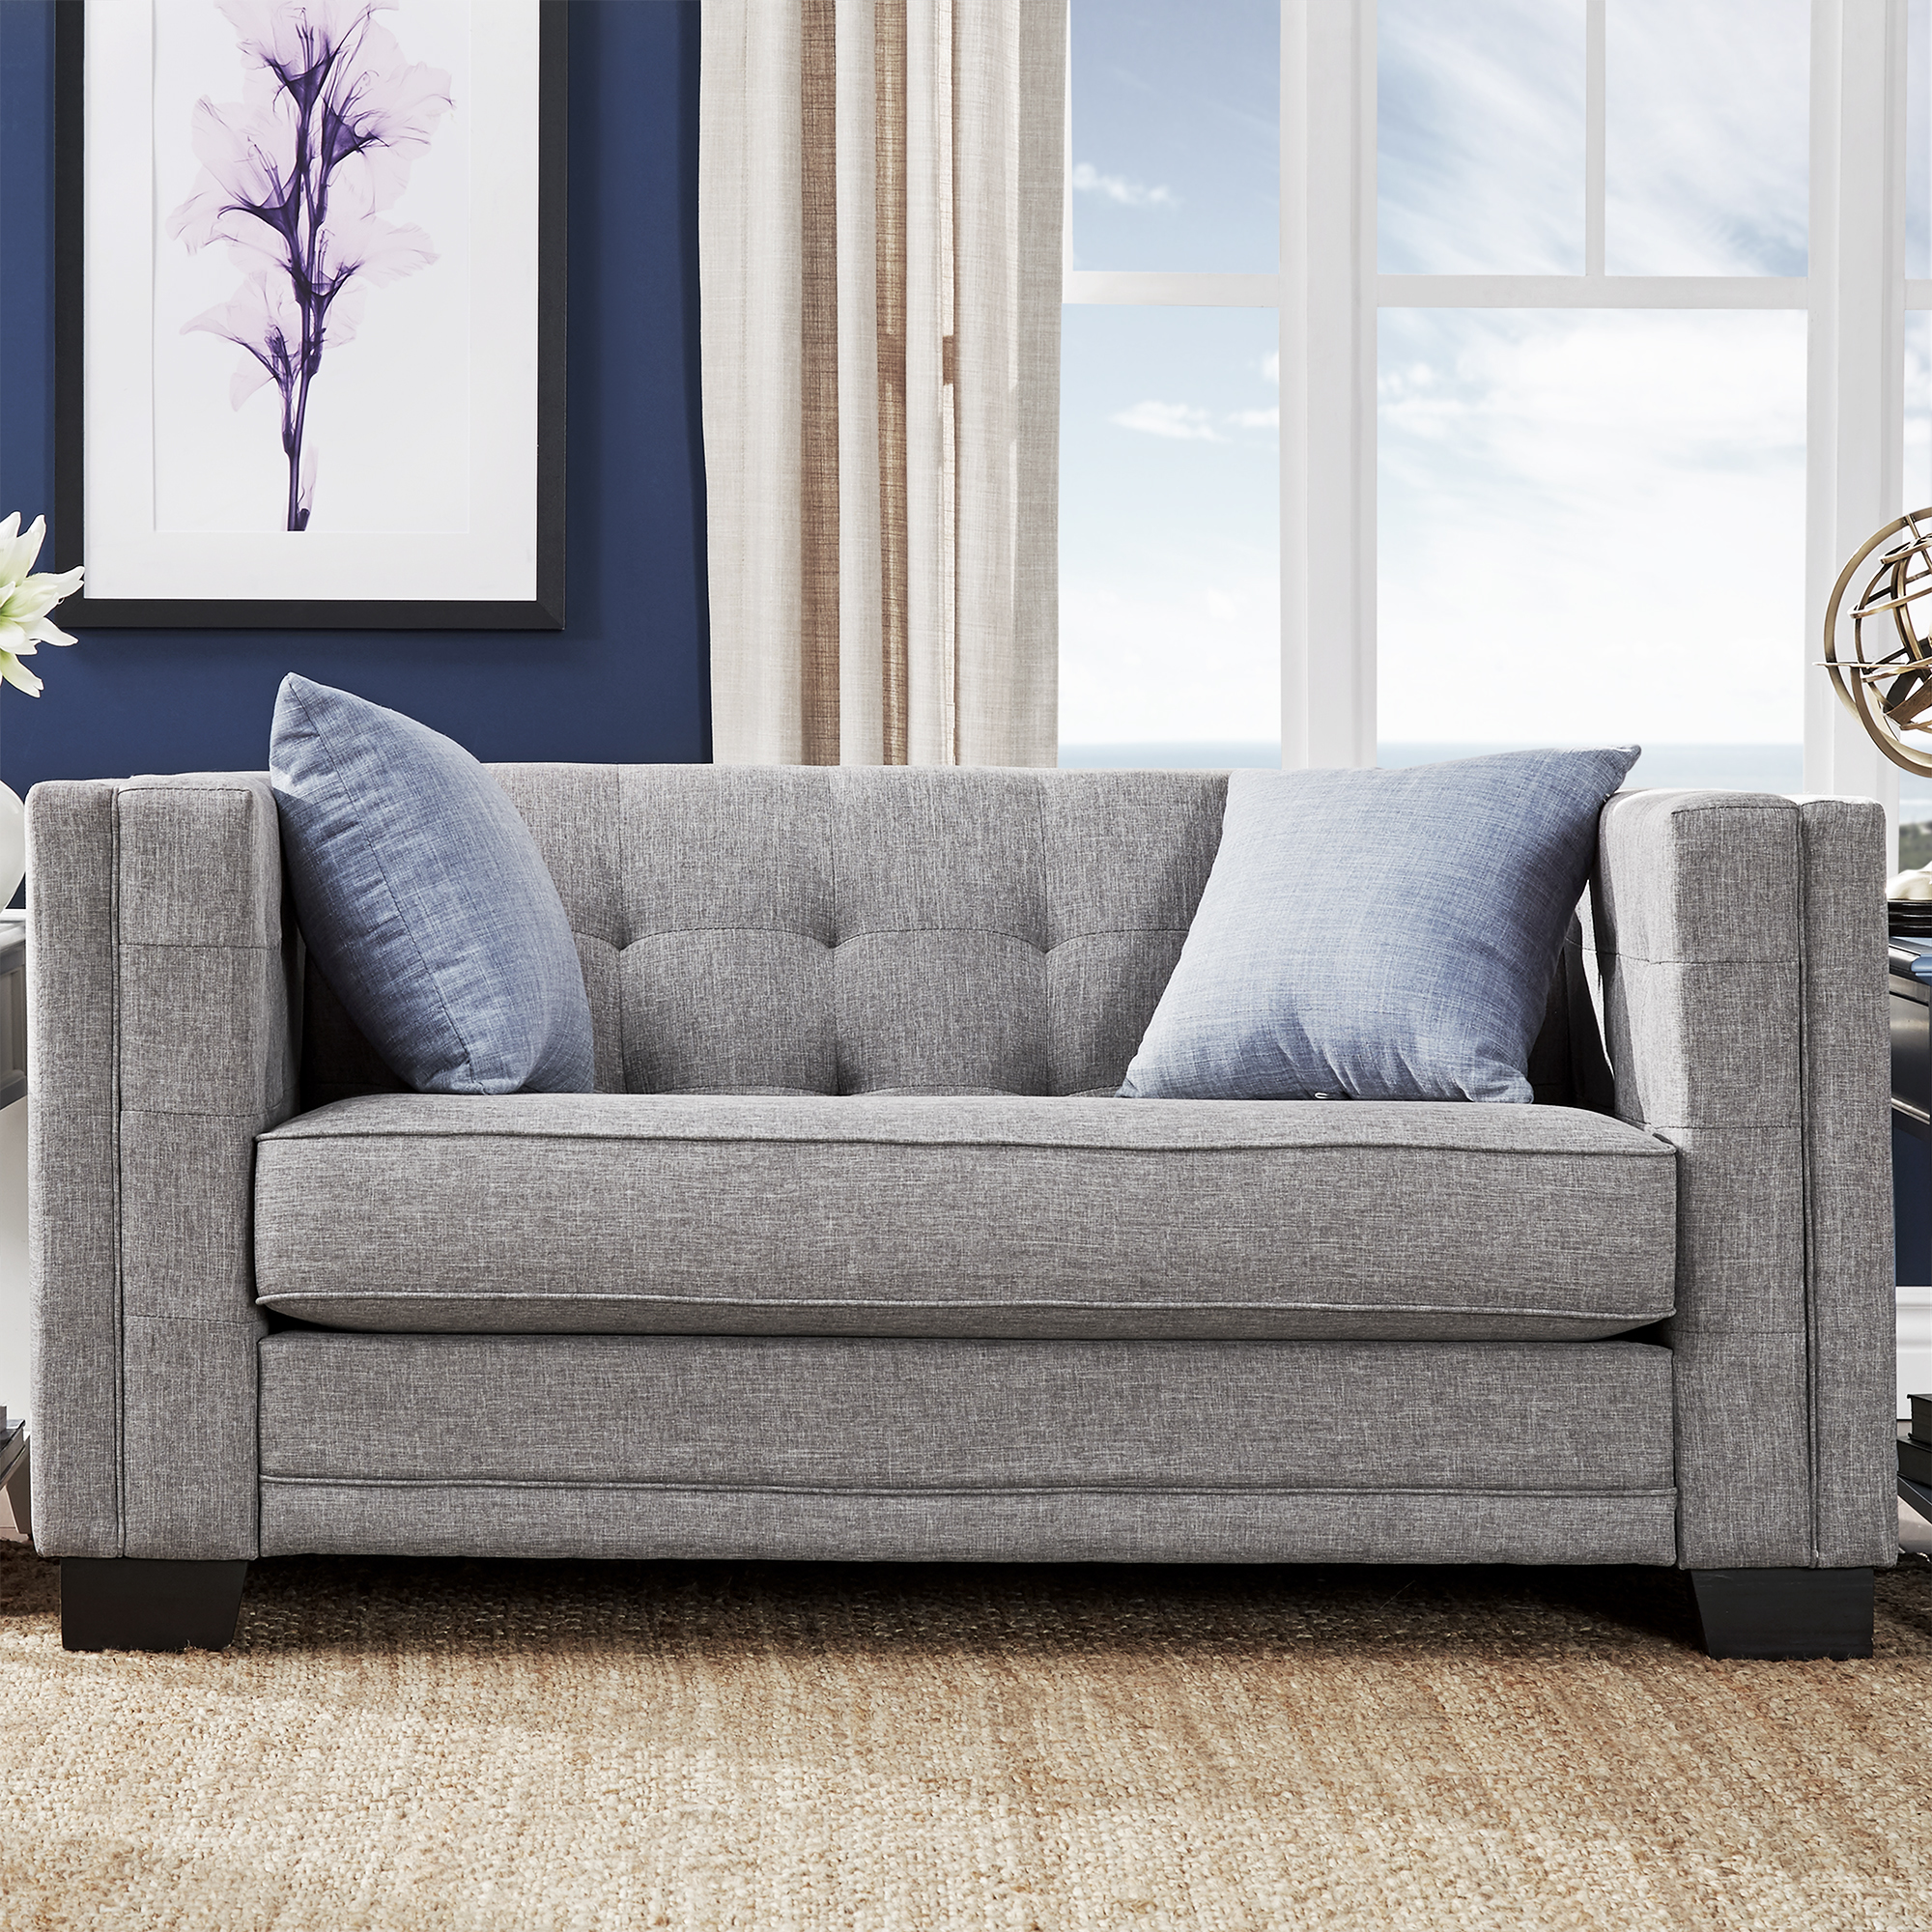 Chelsea Lane Tufted Love Seat, Gray Linen